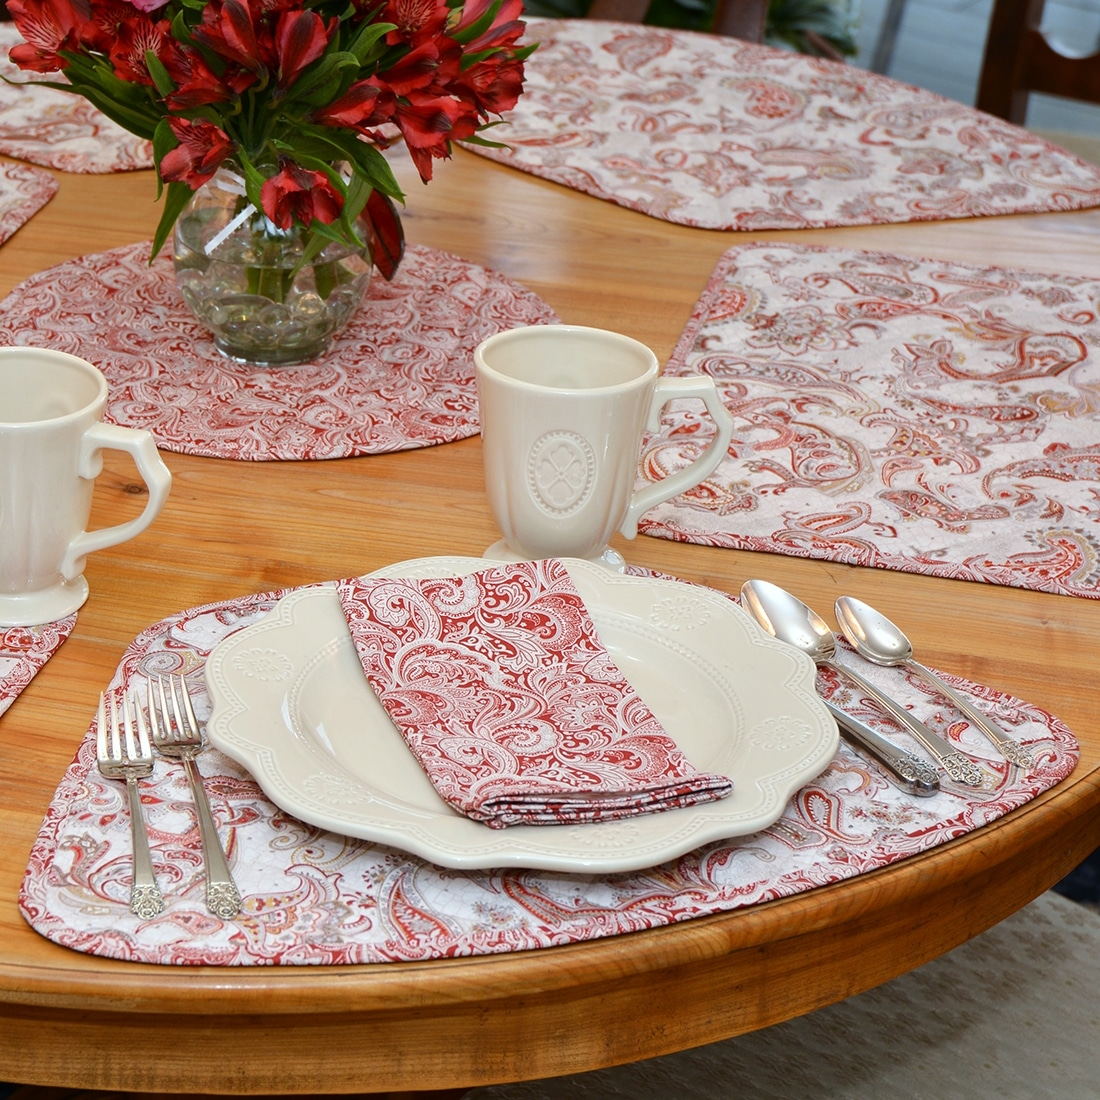 Sweet Pea Linens - Quilted Brick Red & Beige Paisley Print Wedge-Shaped Placemats - Set of Two (SKU#: RS2-1006-W4) - Table Setting